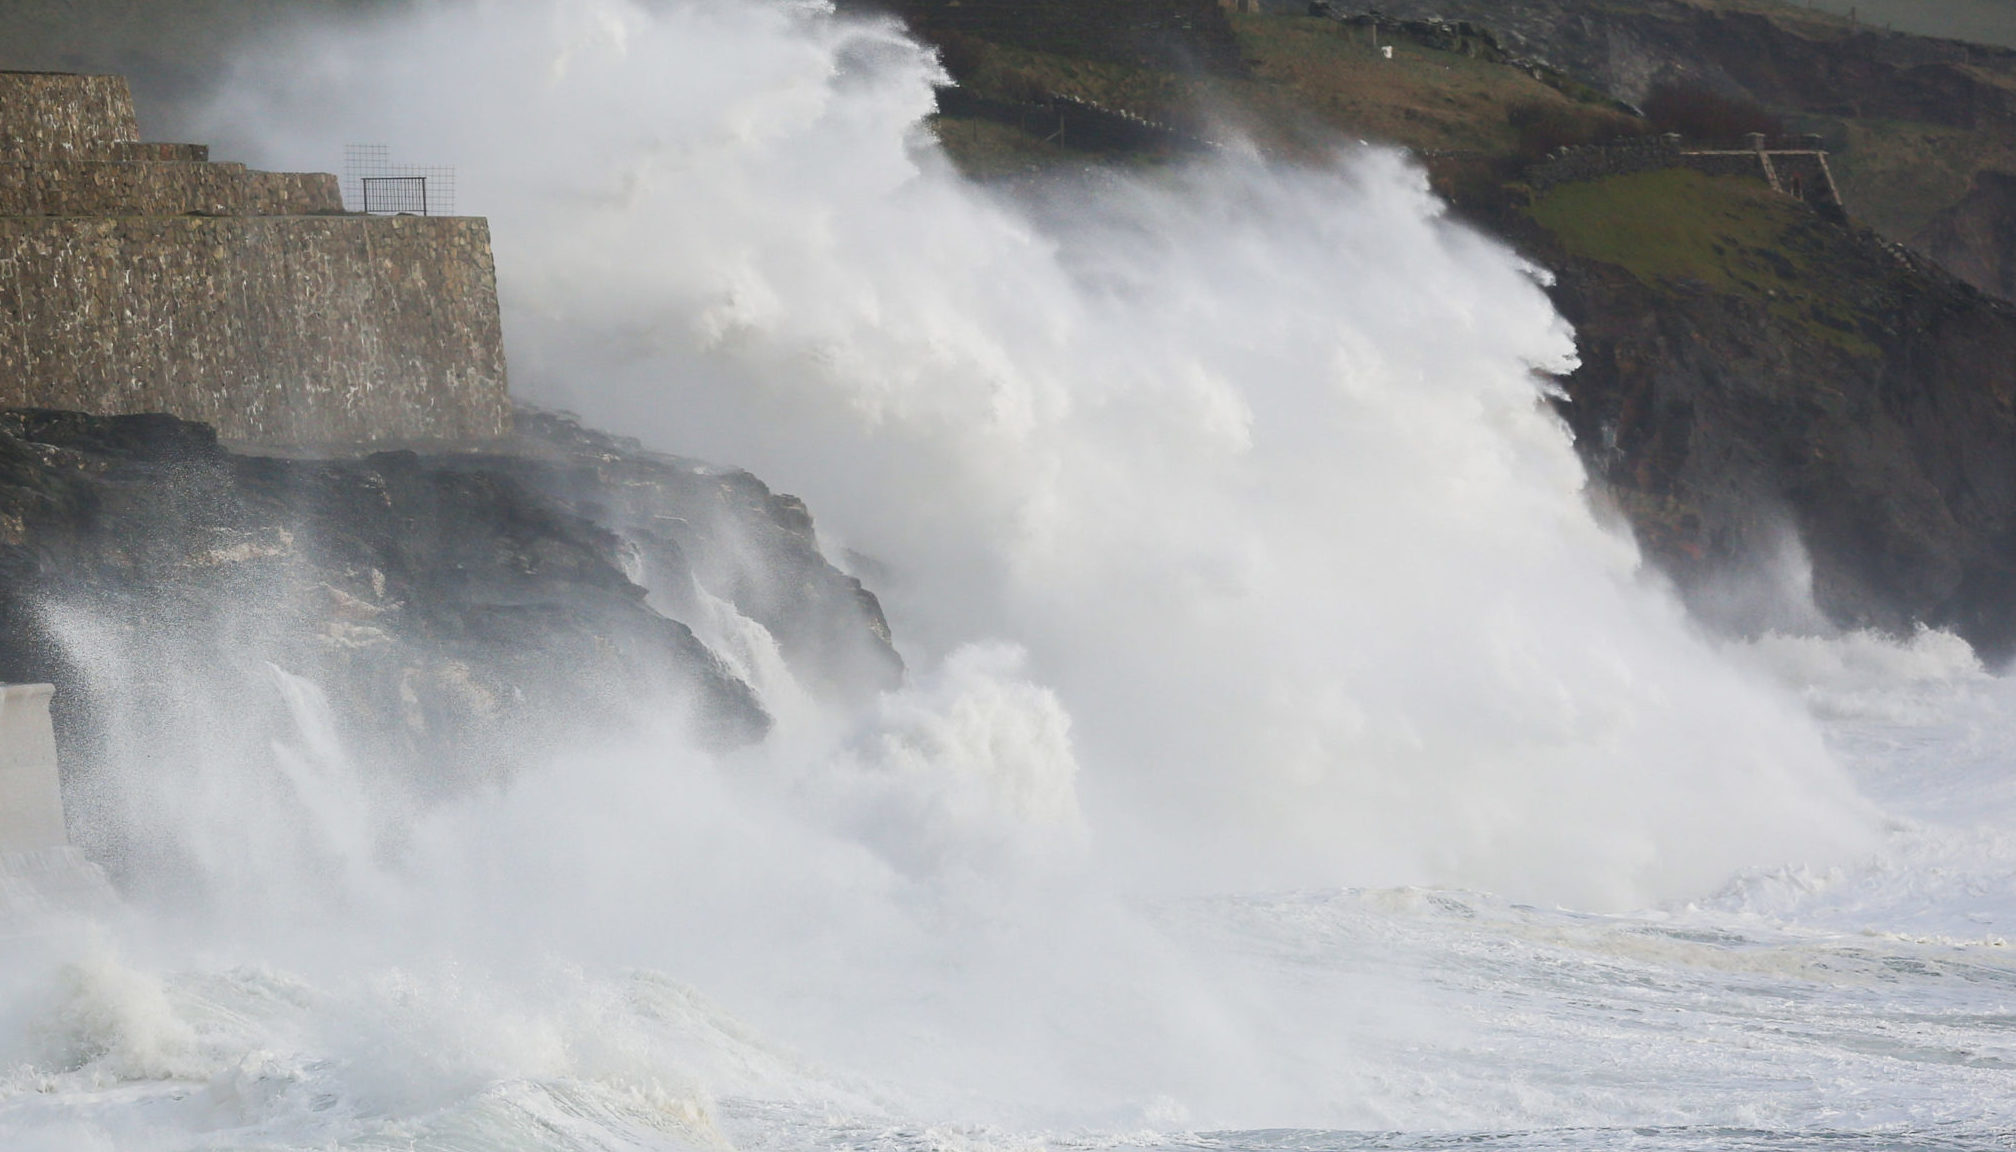 Storm Ciara battered the UK at the weekend.